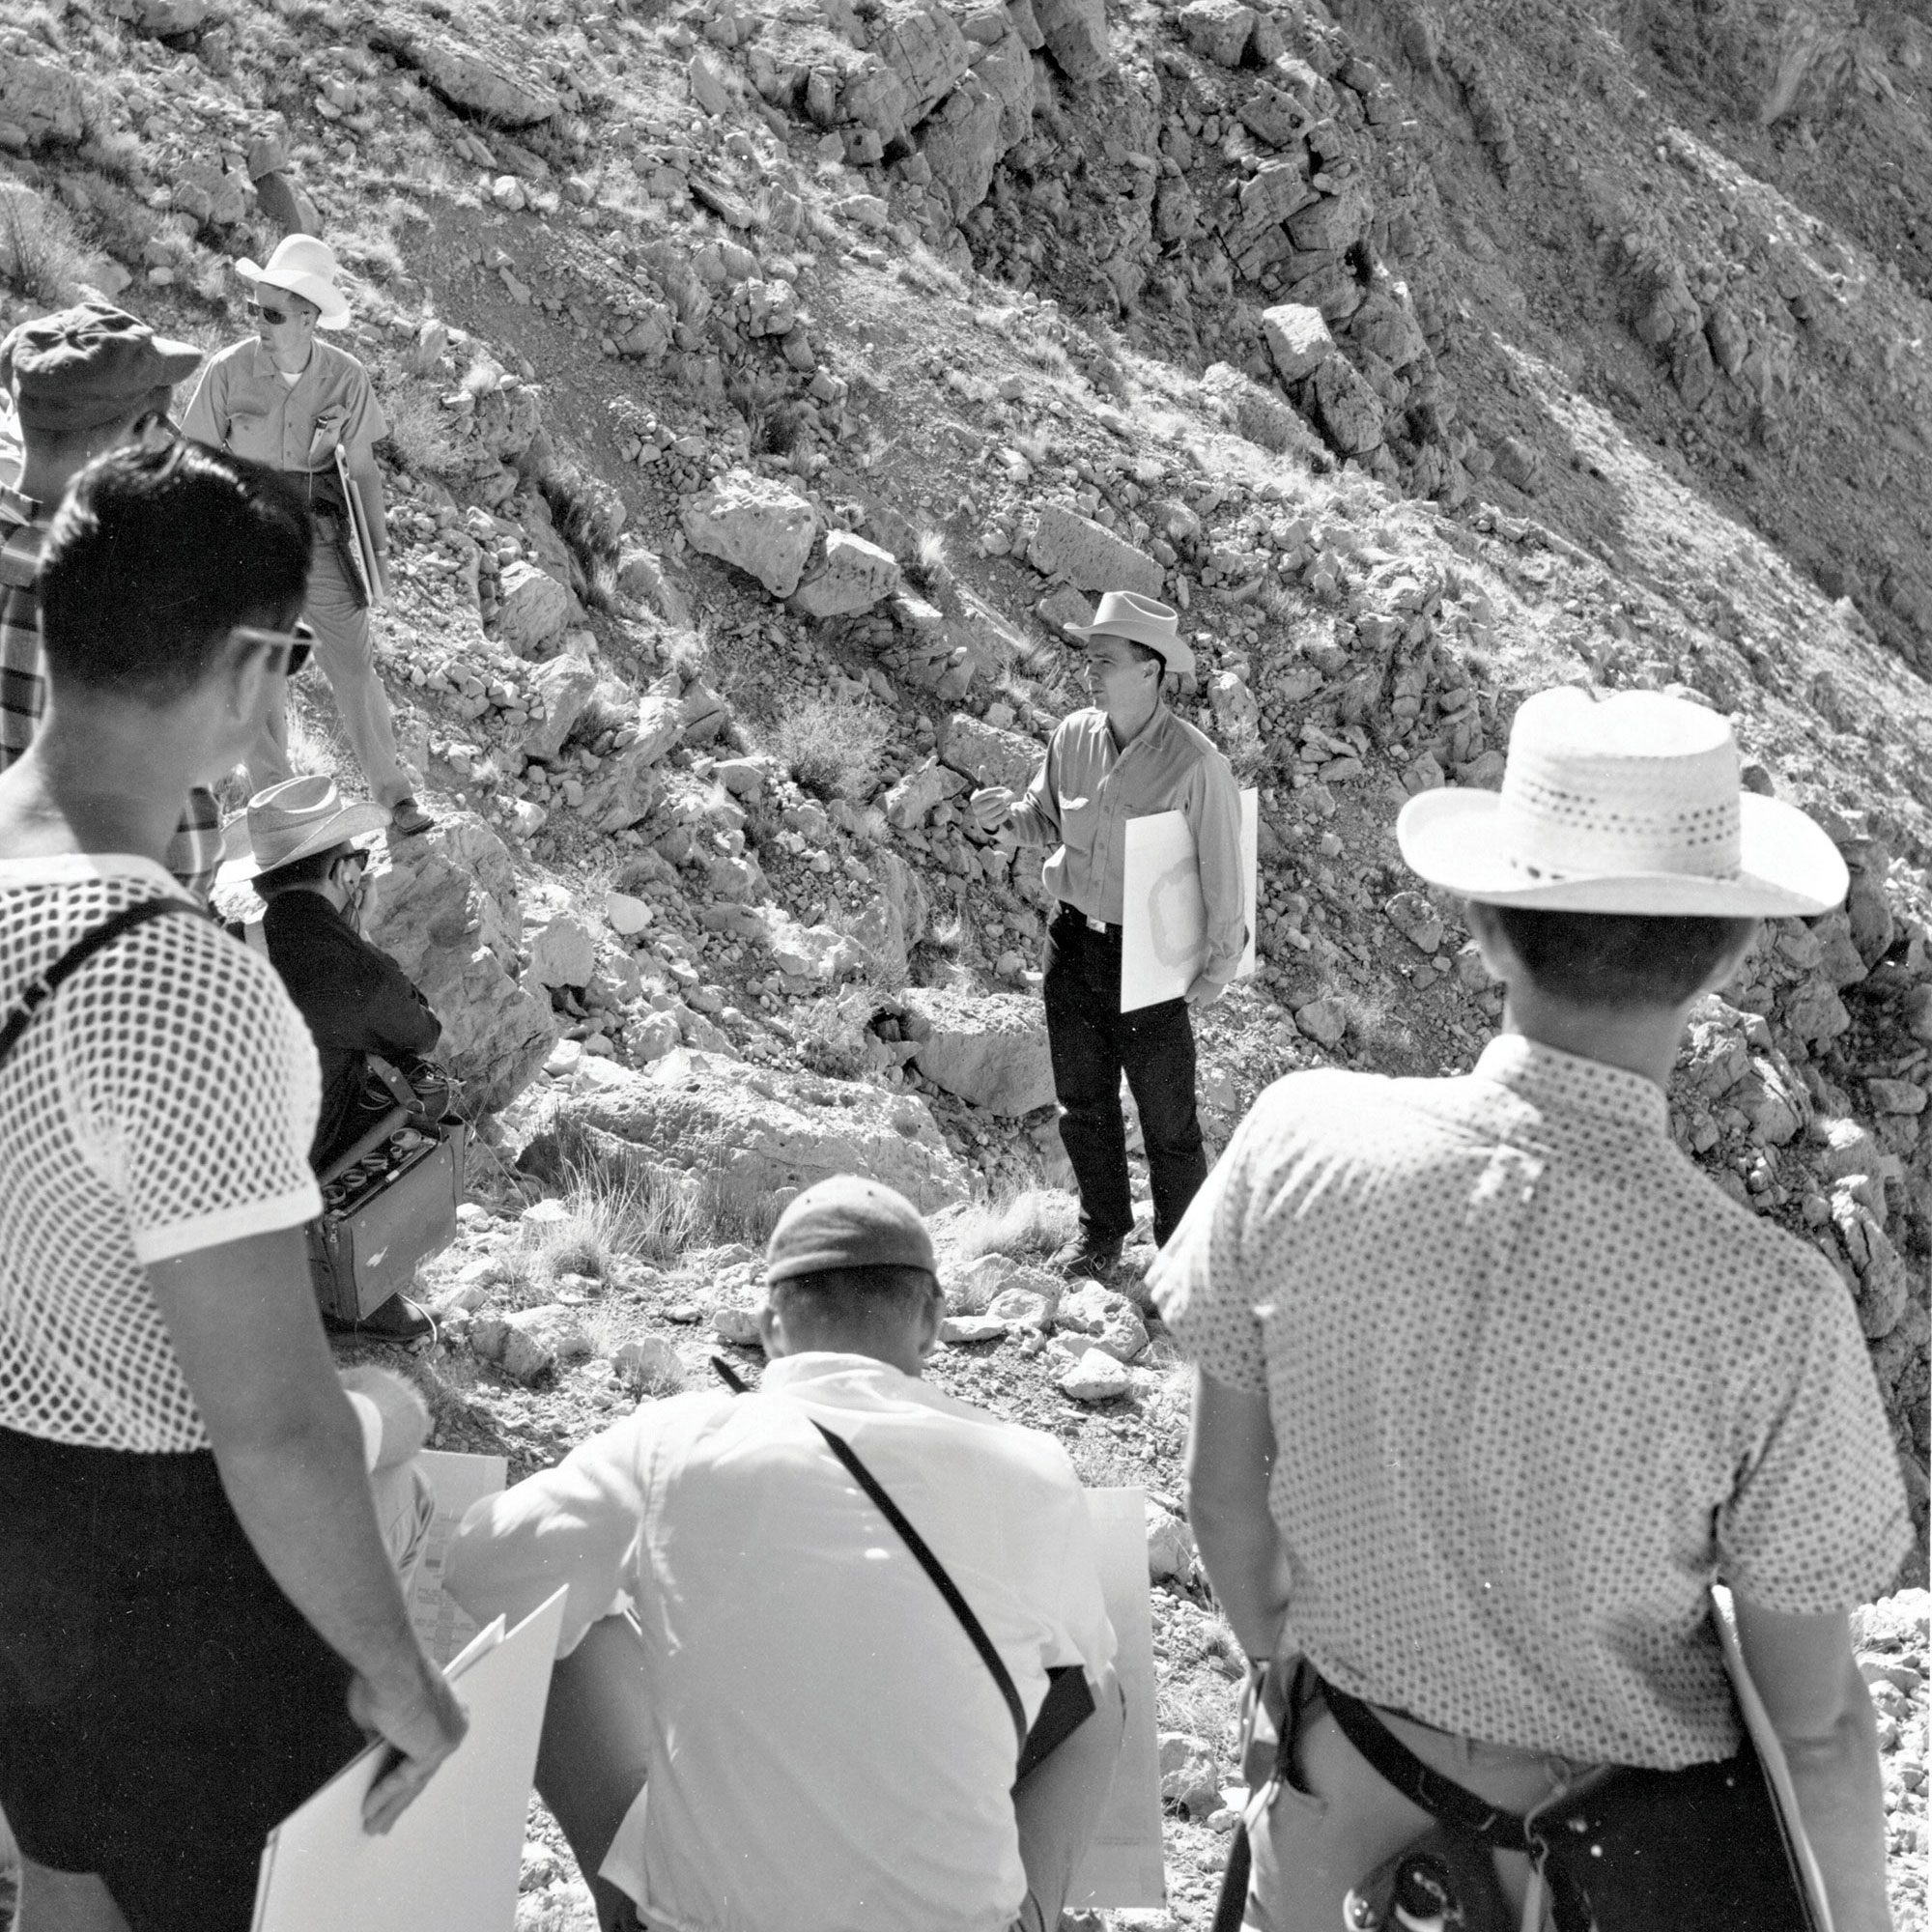 Shoemaker explains Meteor Crater's impact structures to astronauts during the 1967 trip.